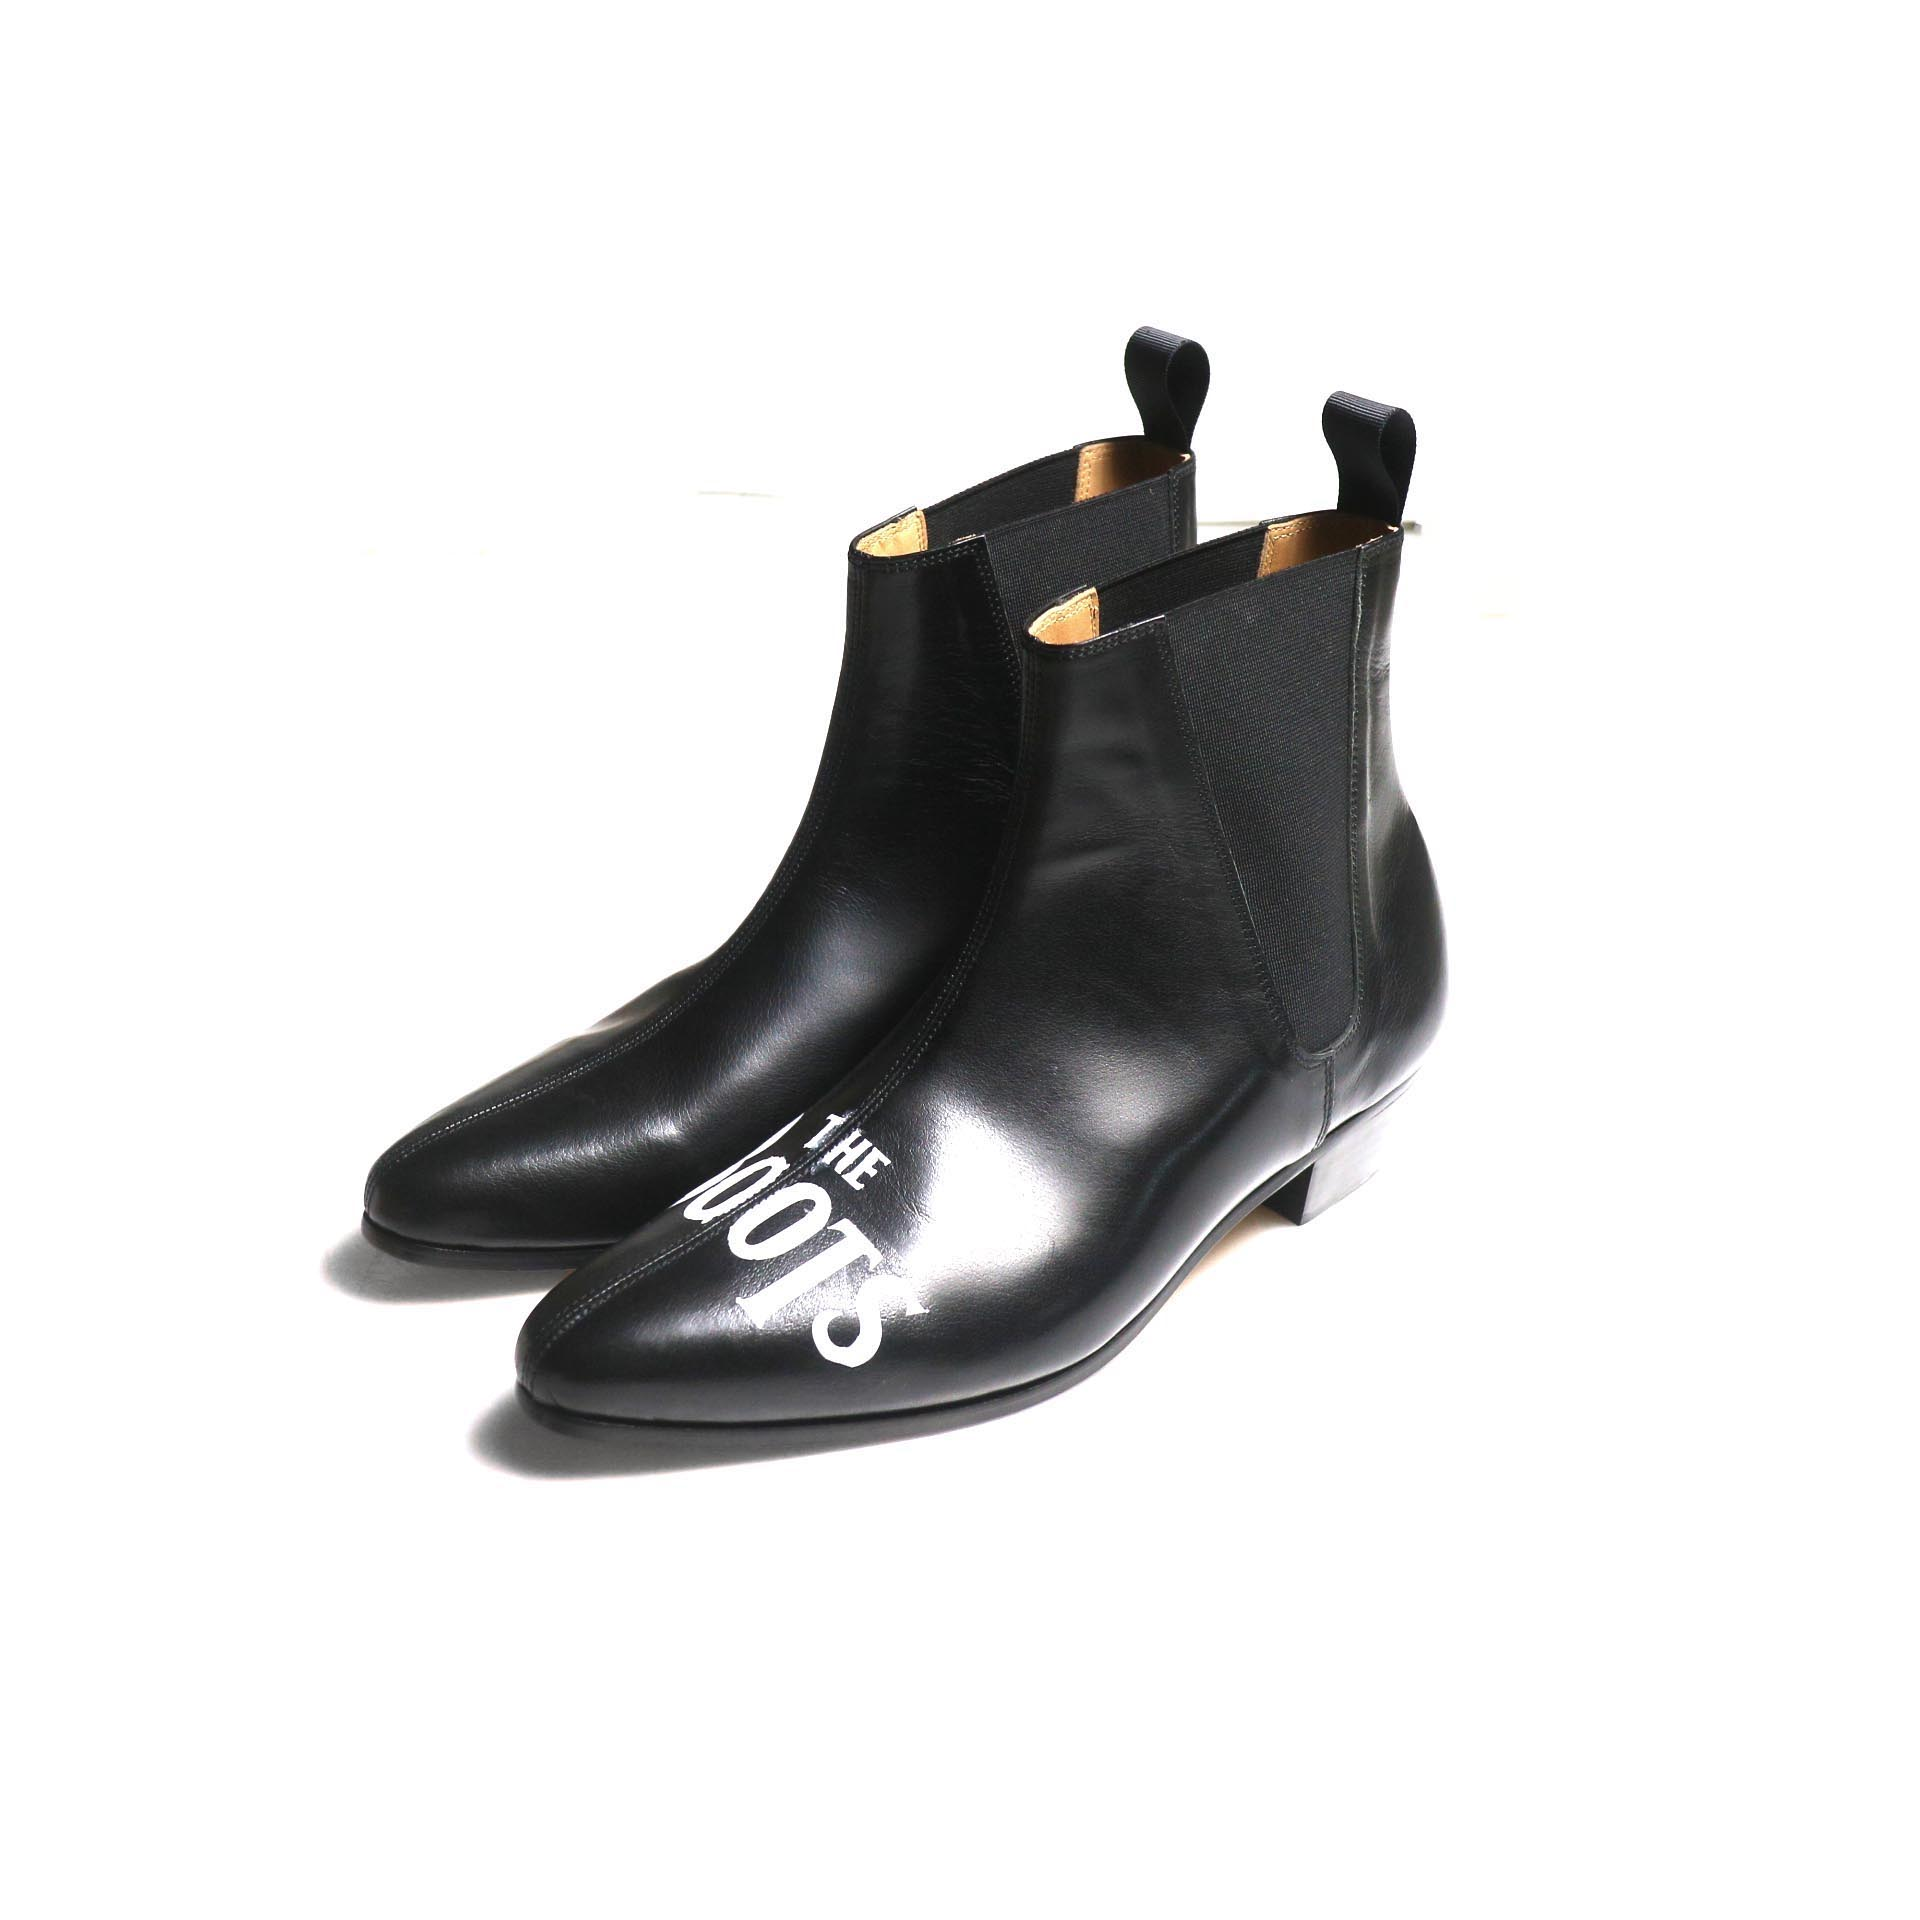 TODAY edition / Chelsea Boots (Special)